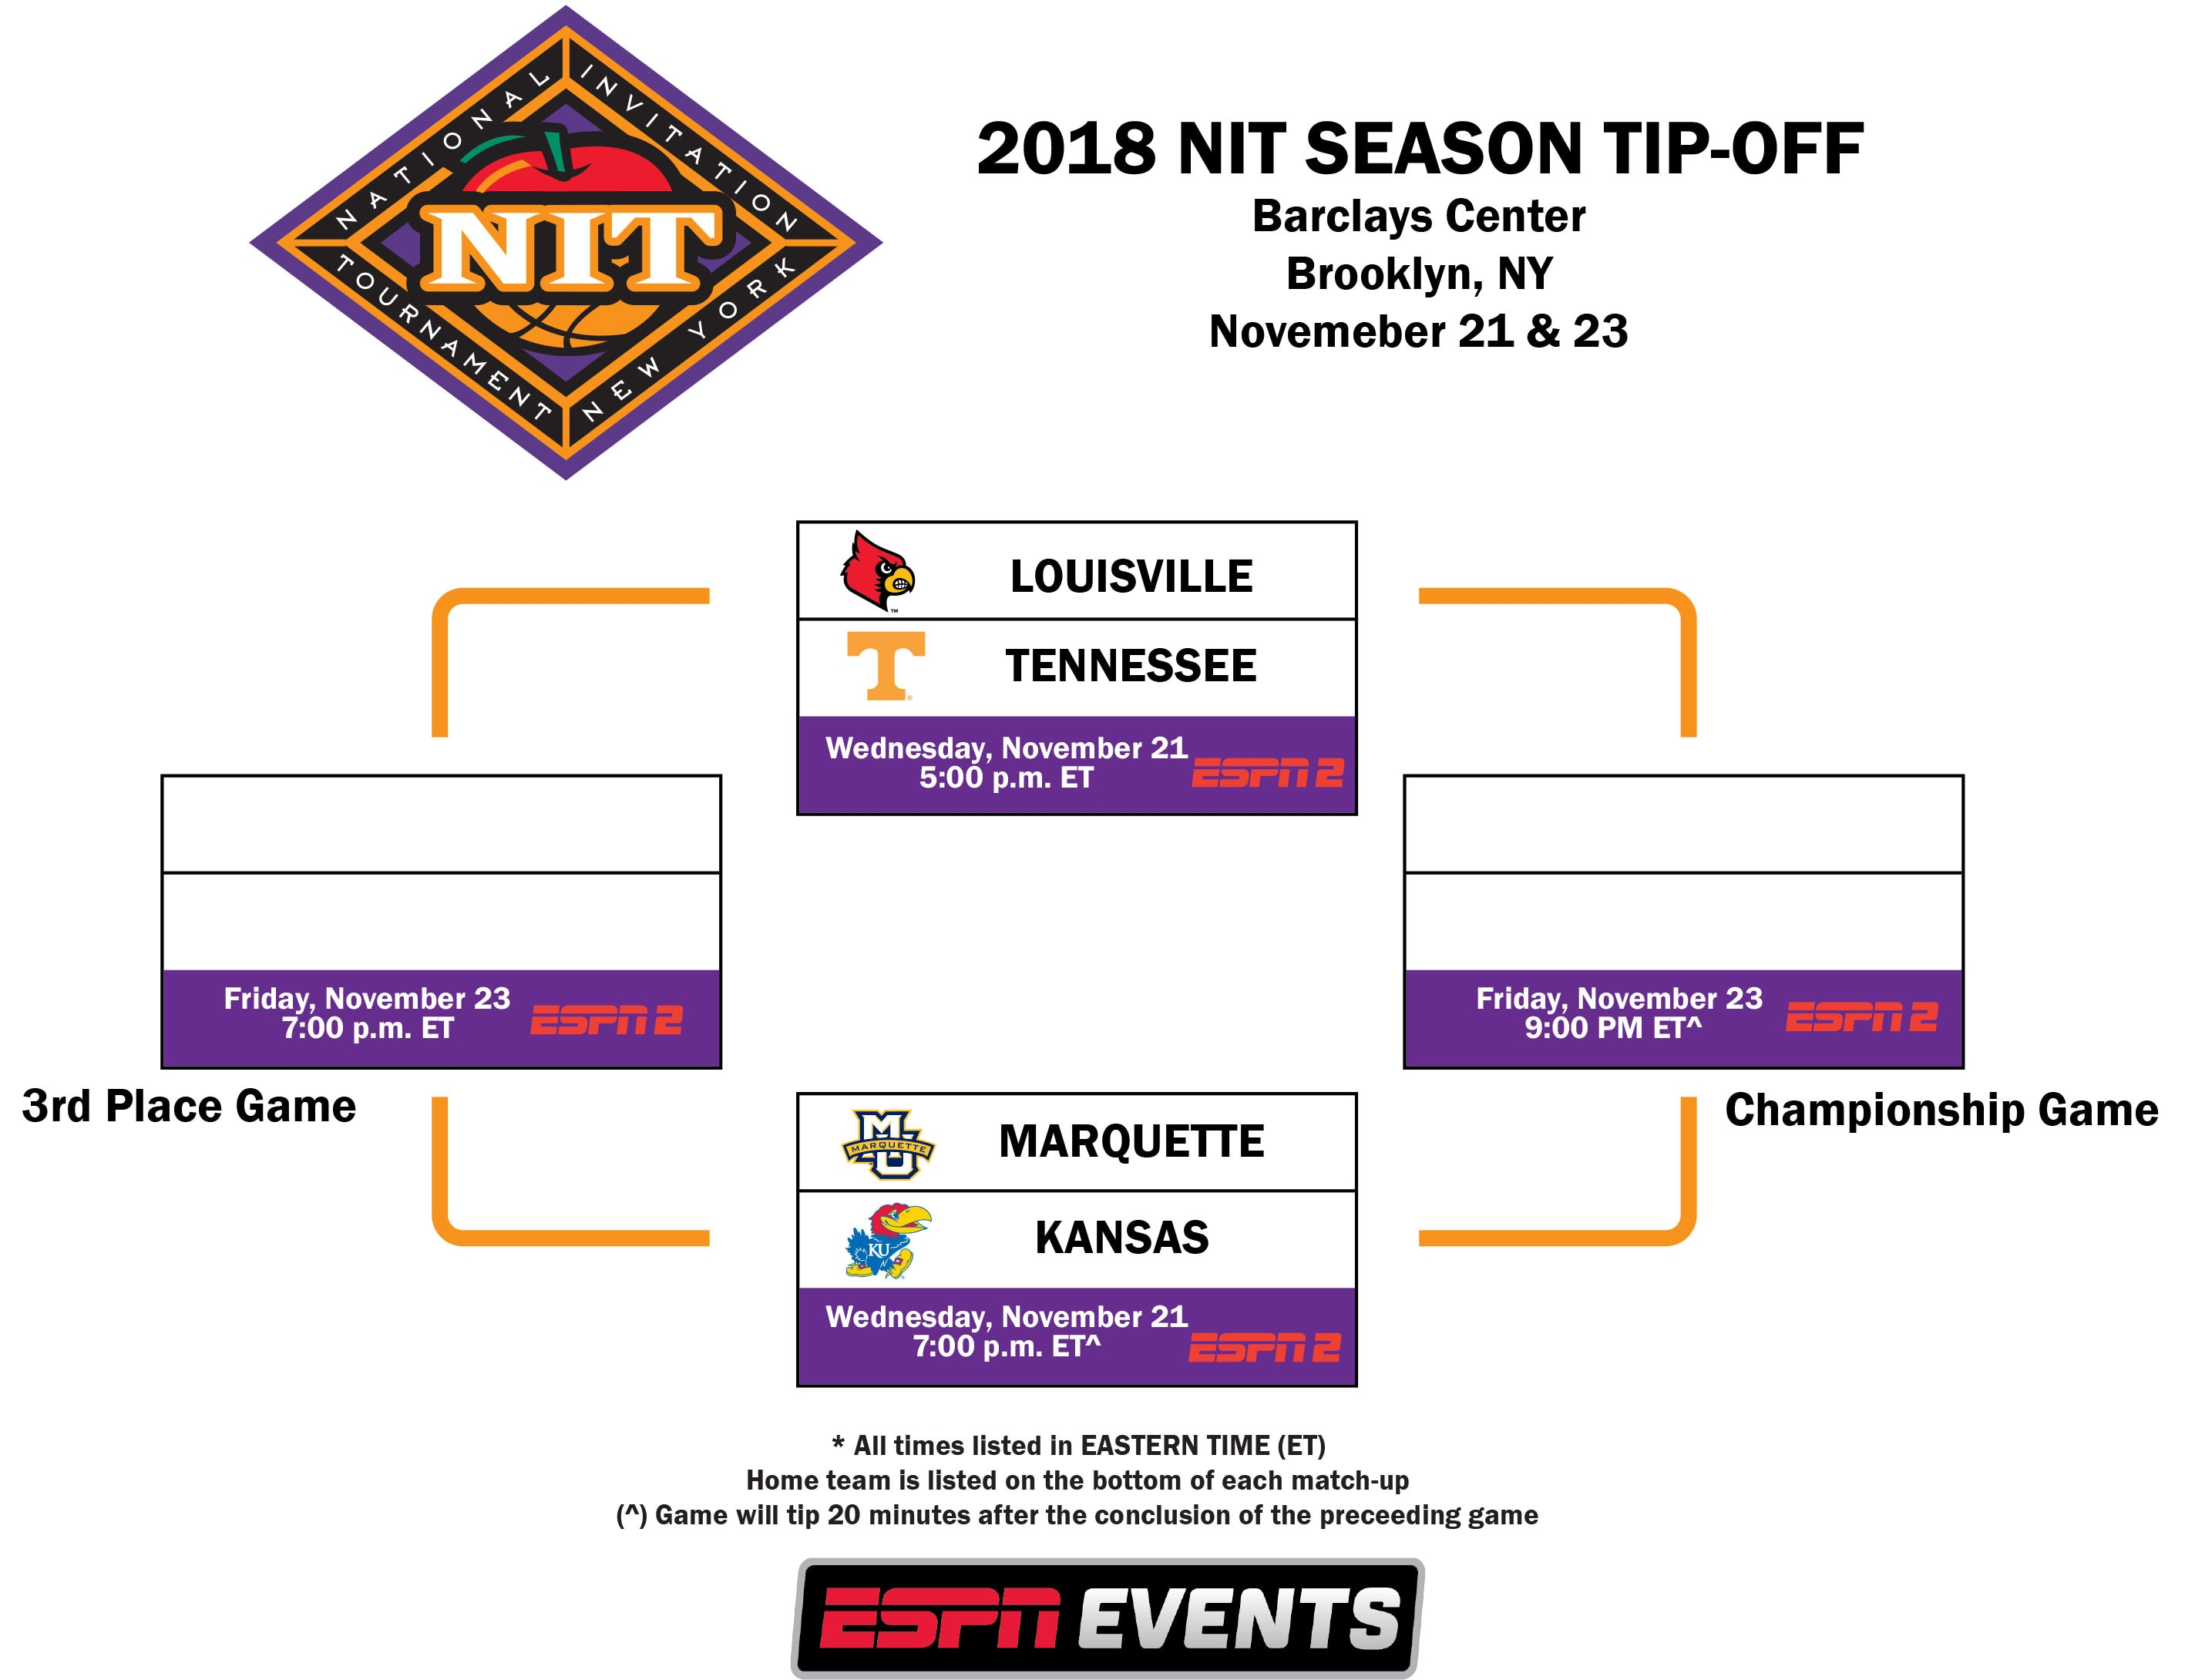 2018 NIT Season Tip-off bracket